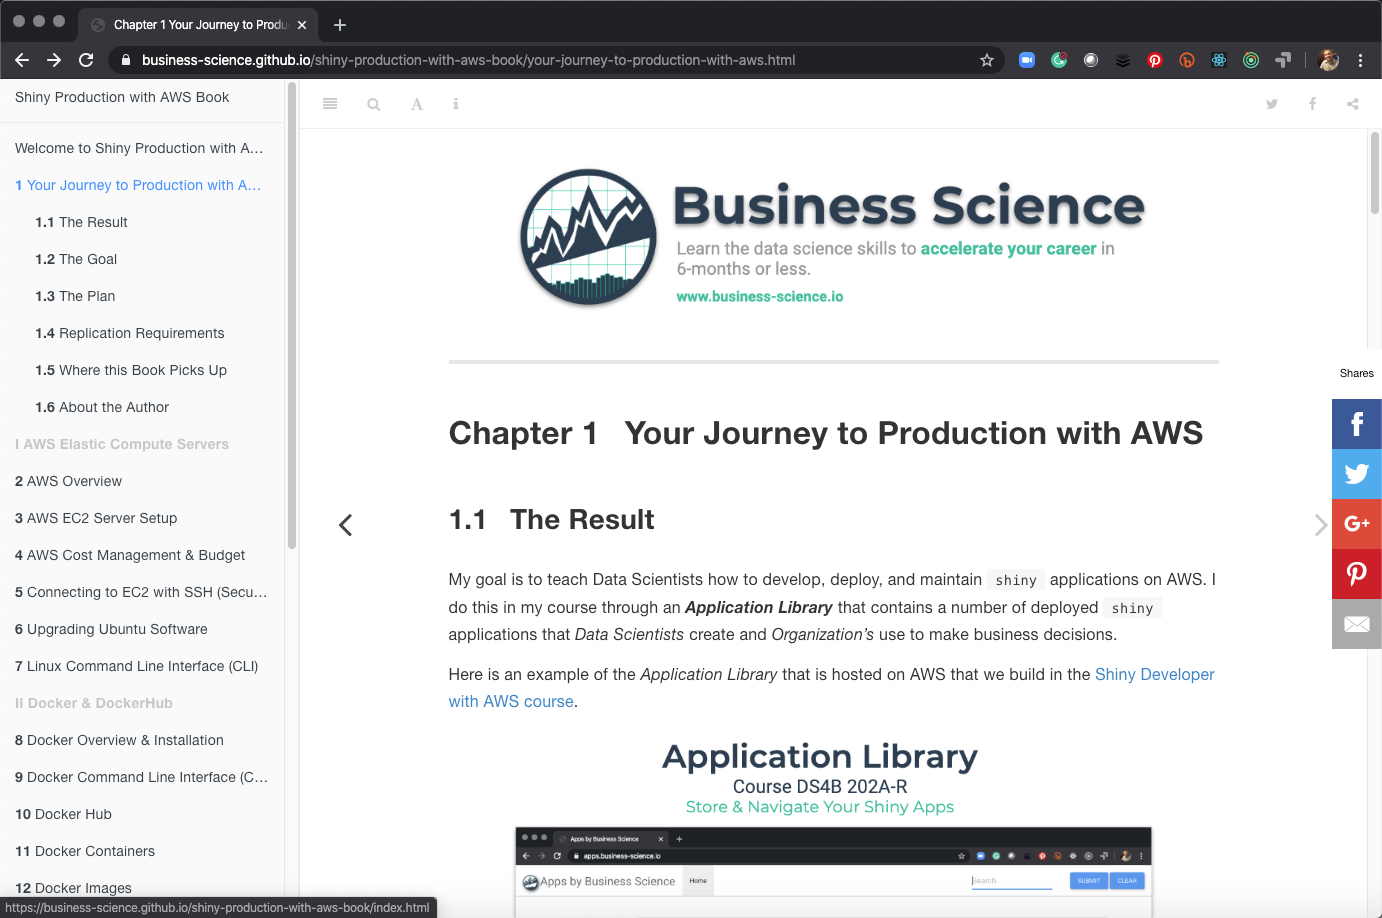 Introducing the Shiny Production with AWS Book